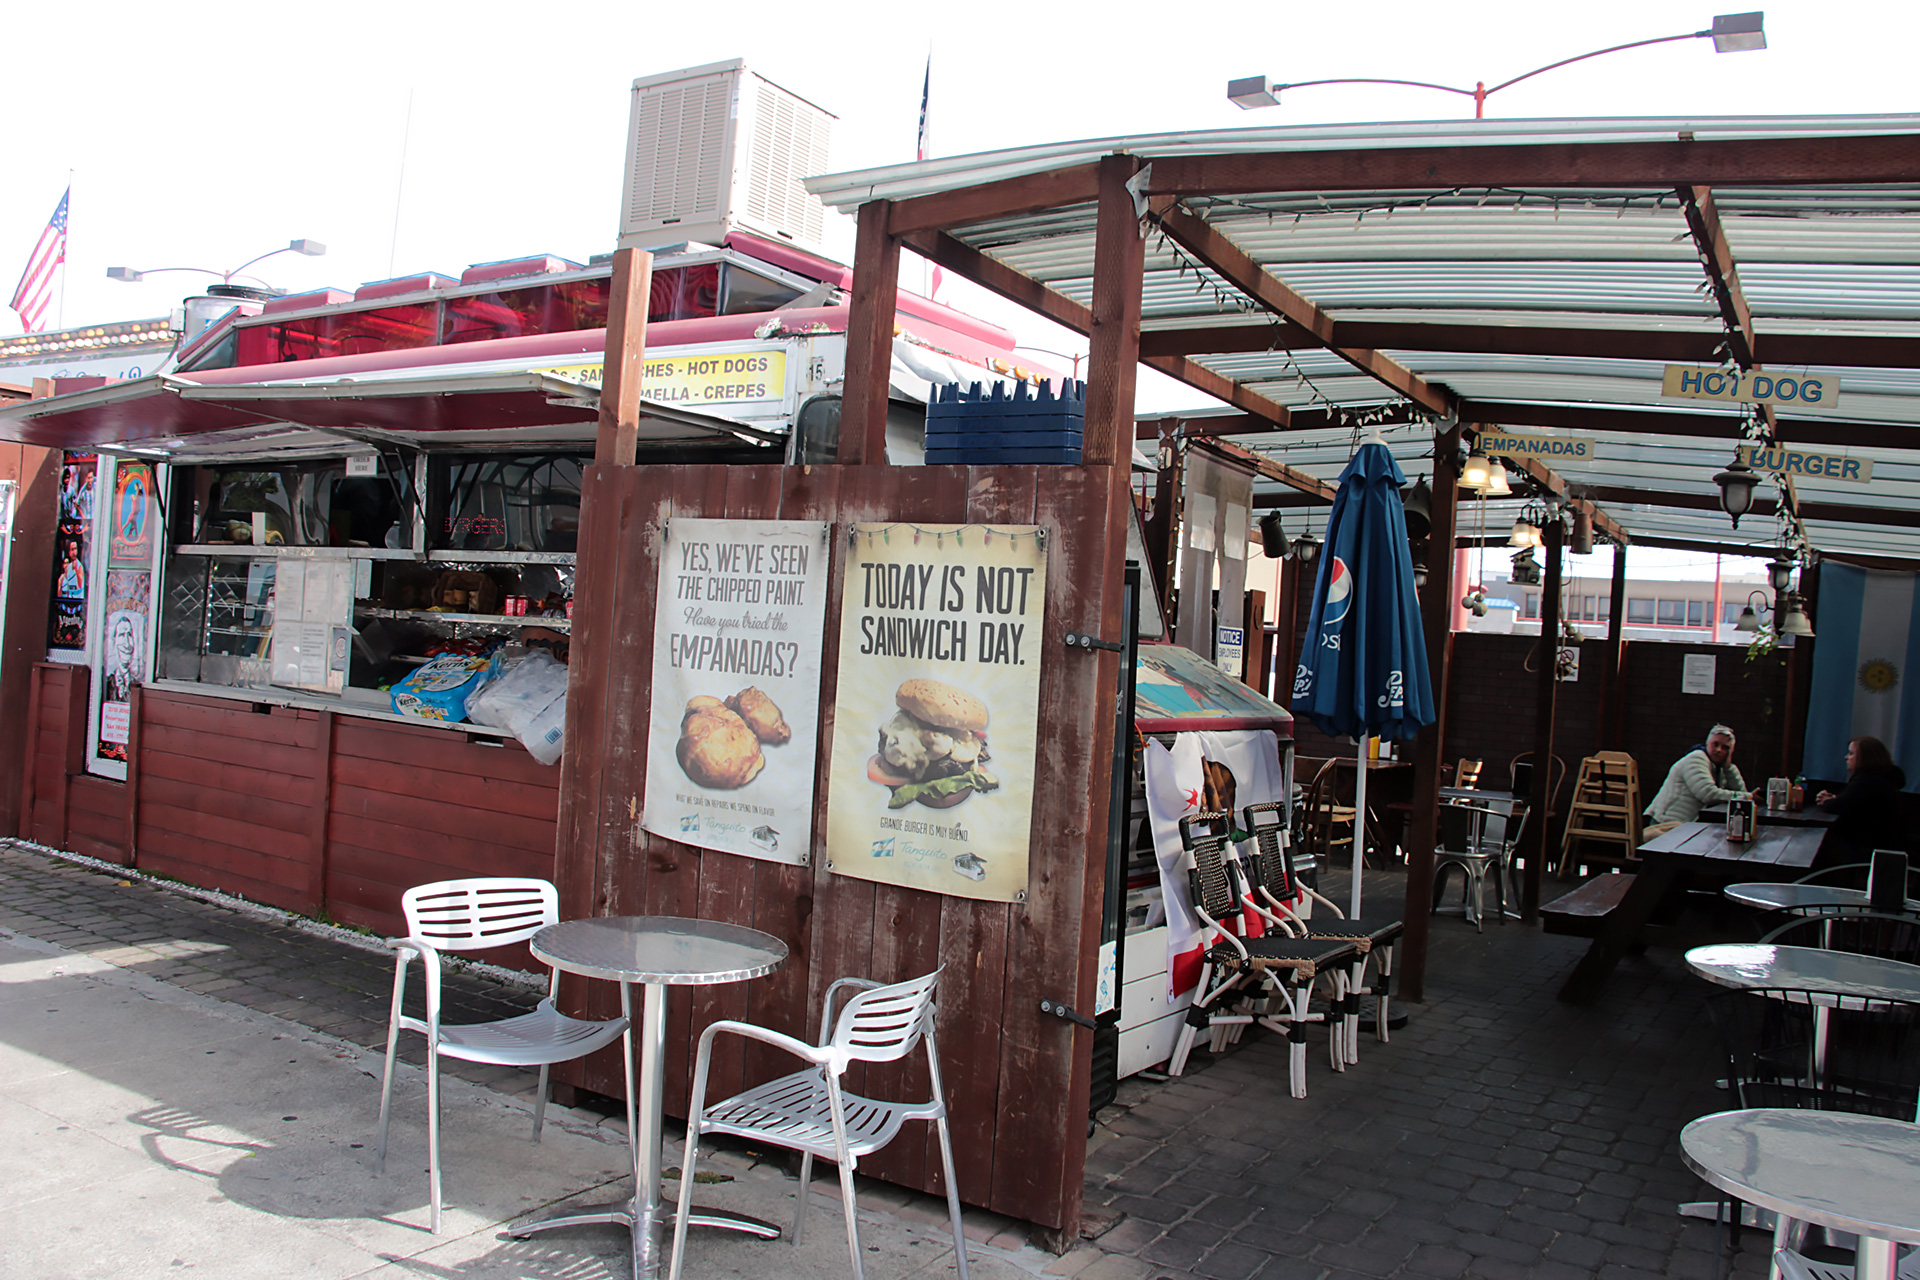 Tanguito truck and dining area.